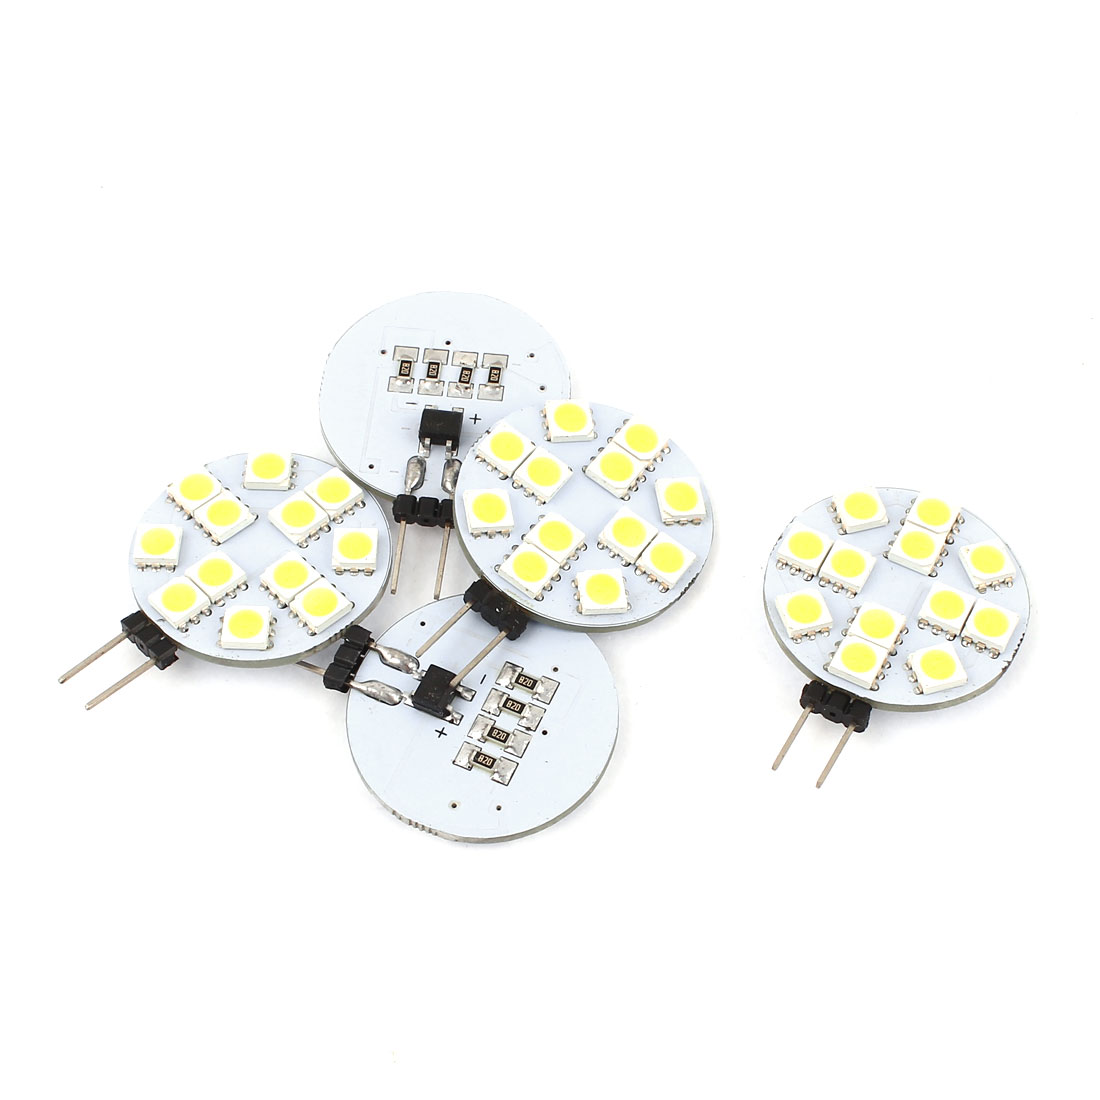 5 x G4 5050 SMD 12 LED Camper RV Cabinet Marine Boat Light Bulb Lamp White